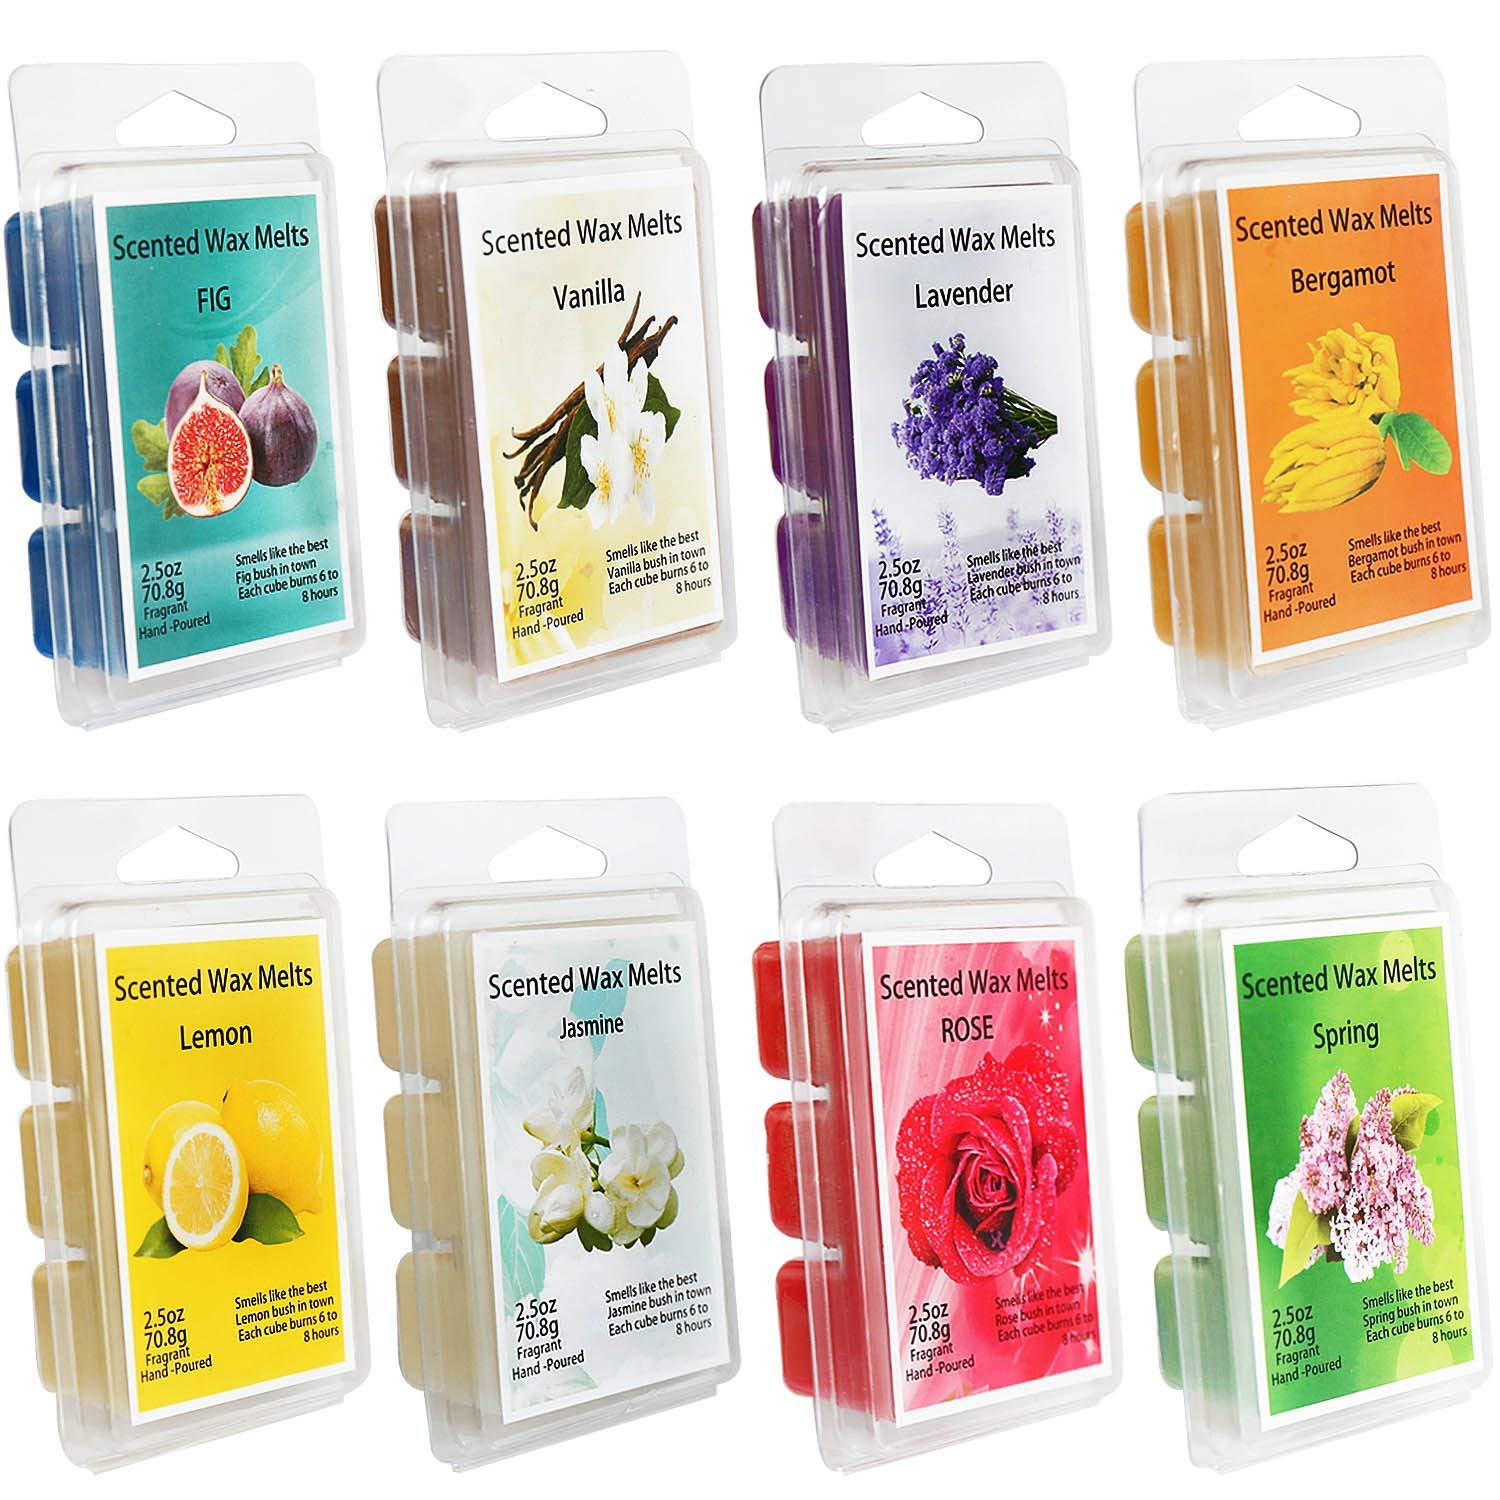 Howemon Scented Wax Melts -Set of 8 (2.5 oz) Assorted Wax Warmer Cubes/Tarts - Lemon, Fig, Lavender, Spring Fresh,Rose ,Jasmine,Vanilla,Bergamot